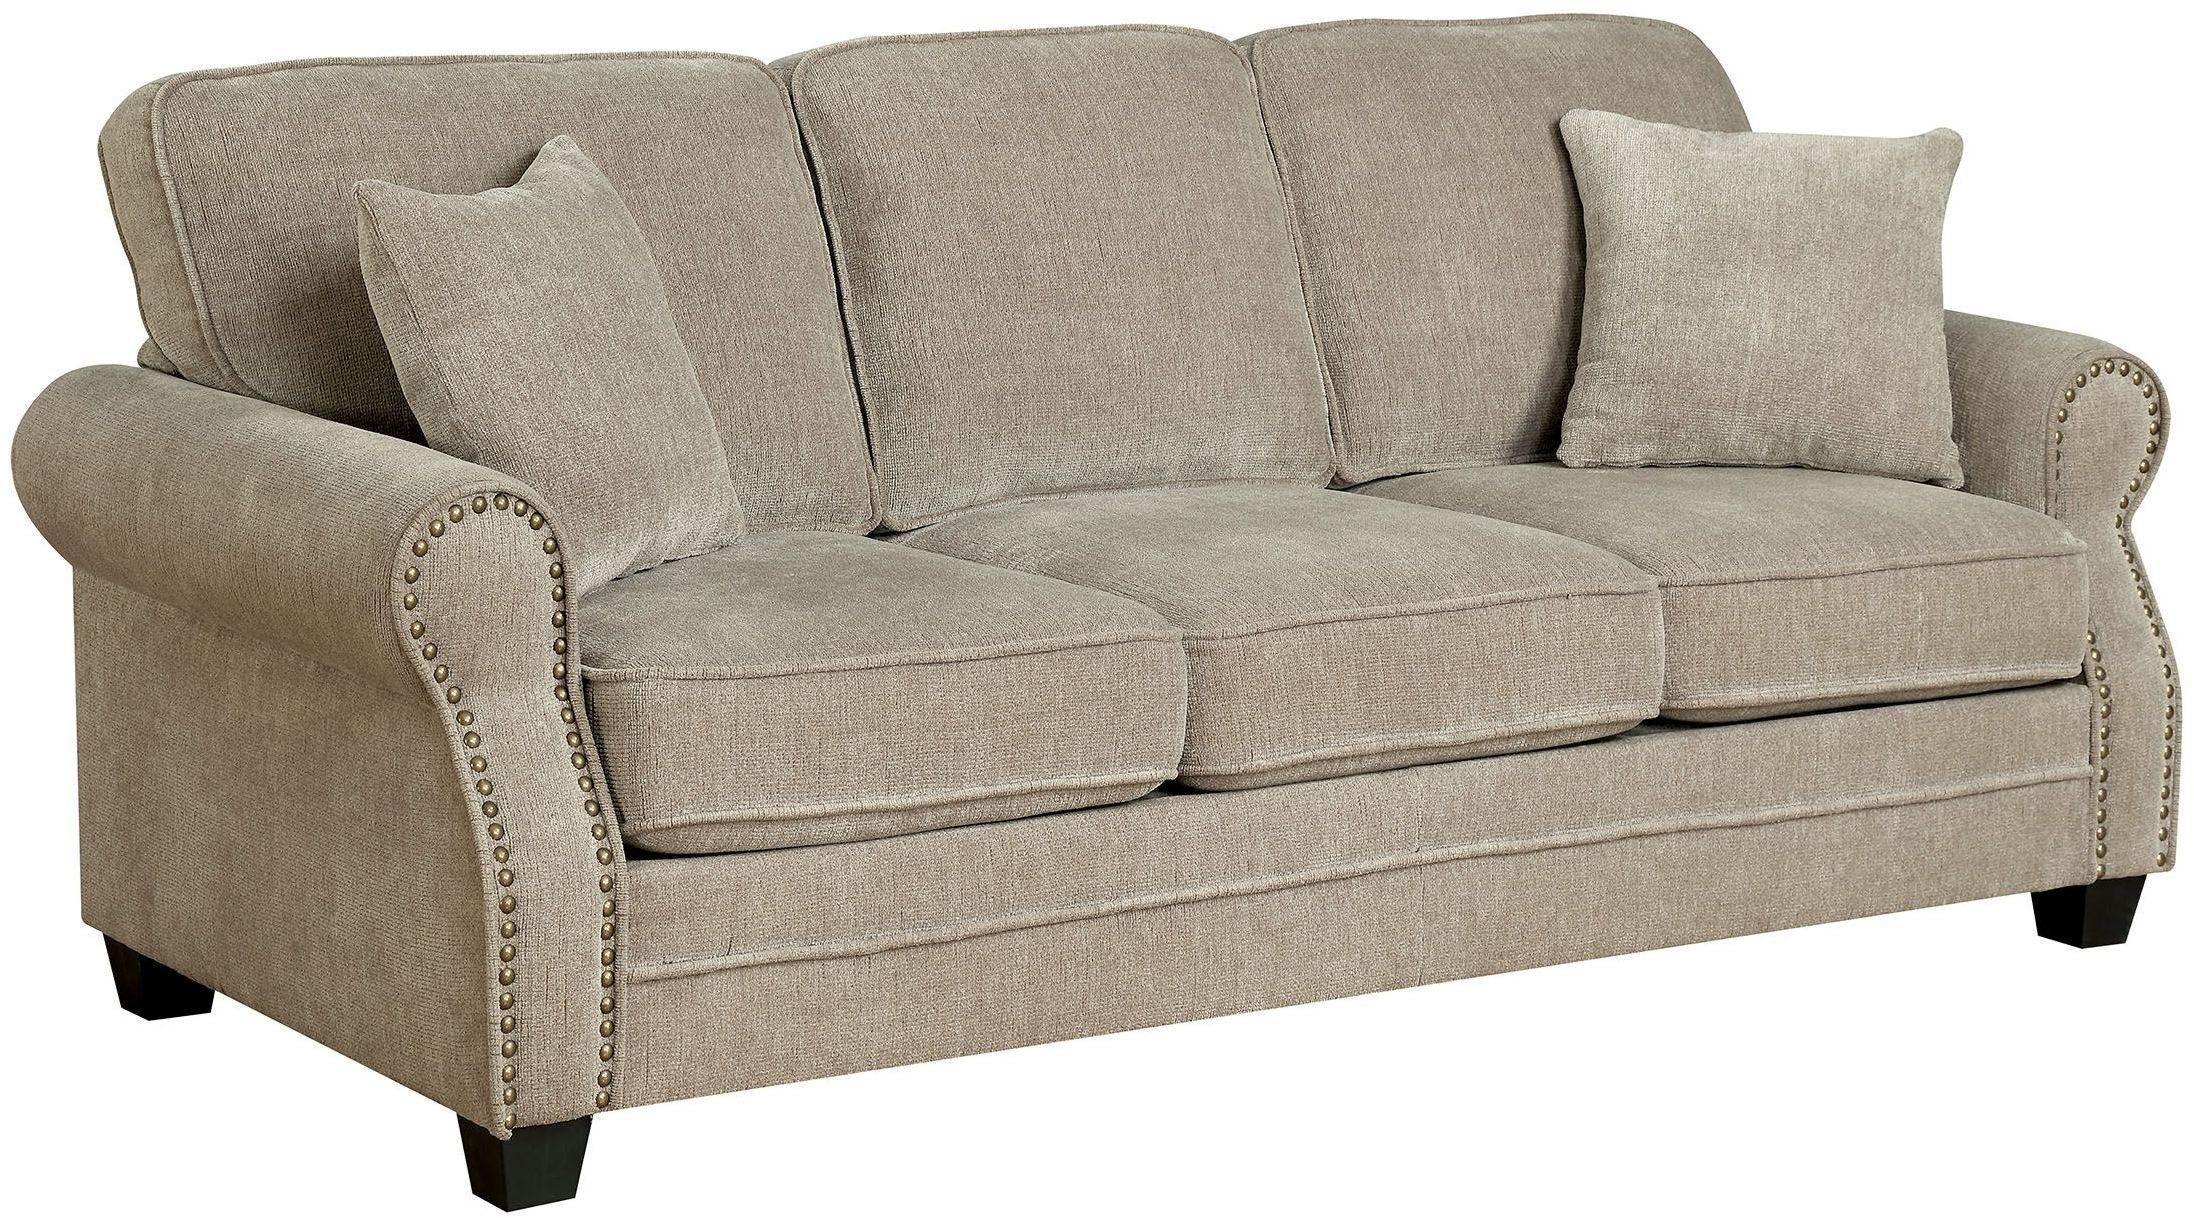 Lynne Brown Sofa from Furniture of America